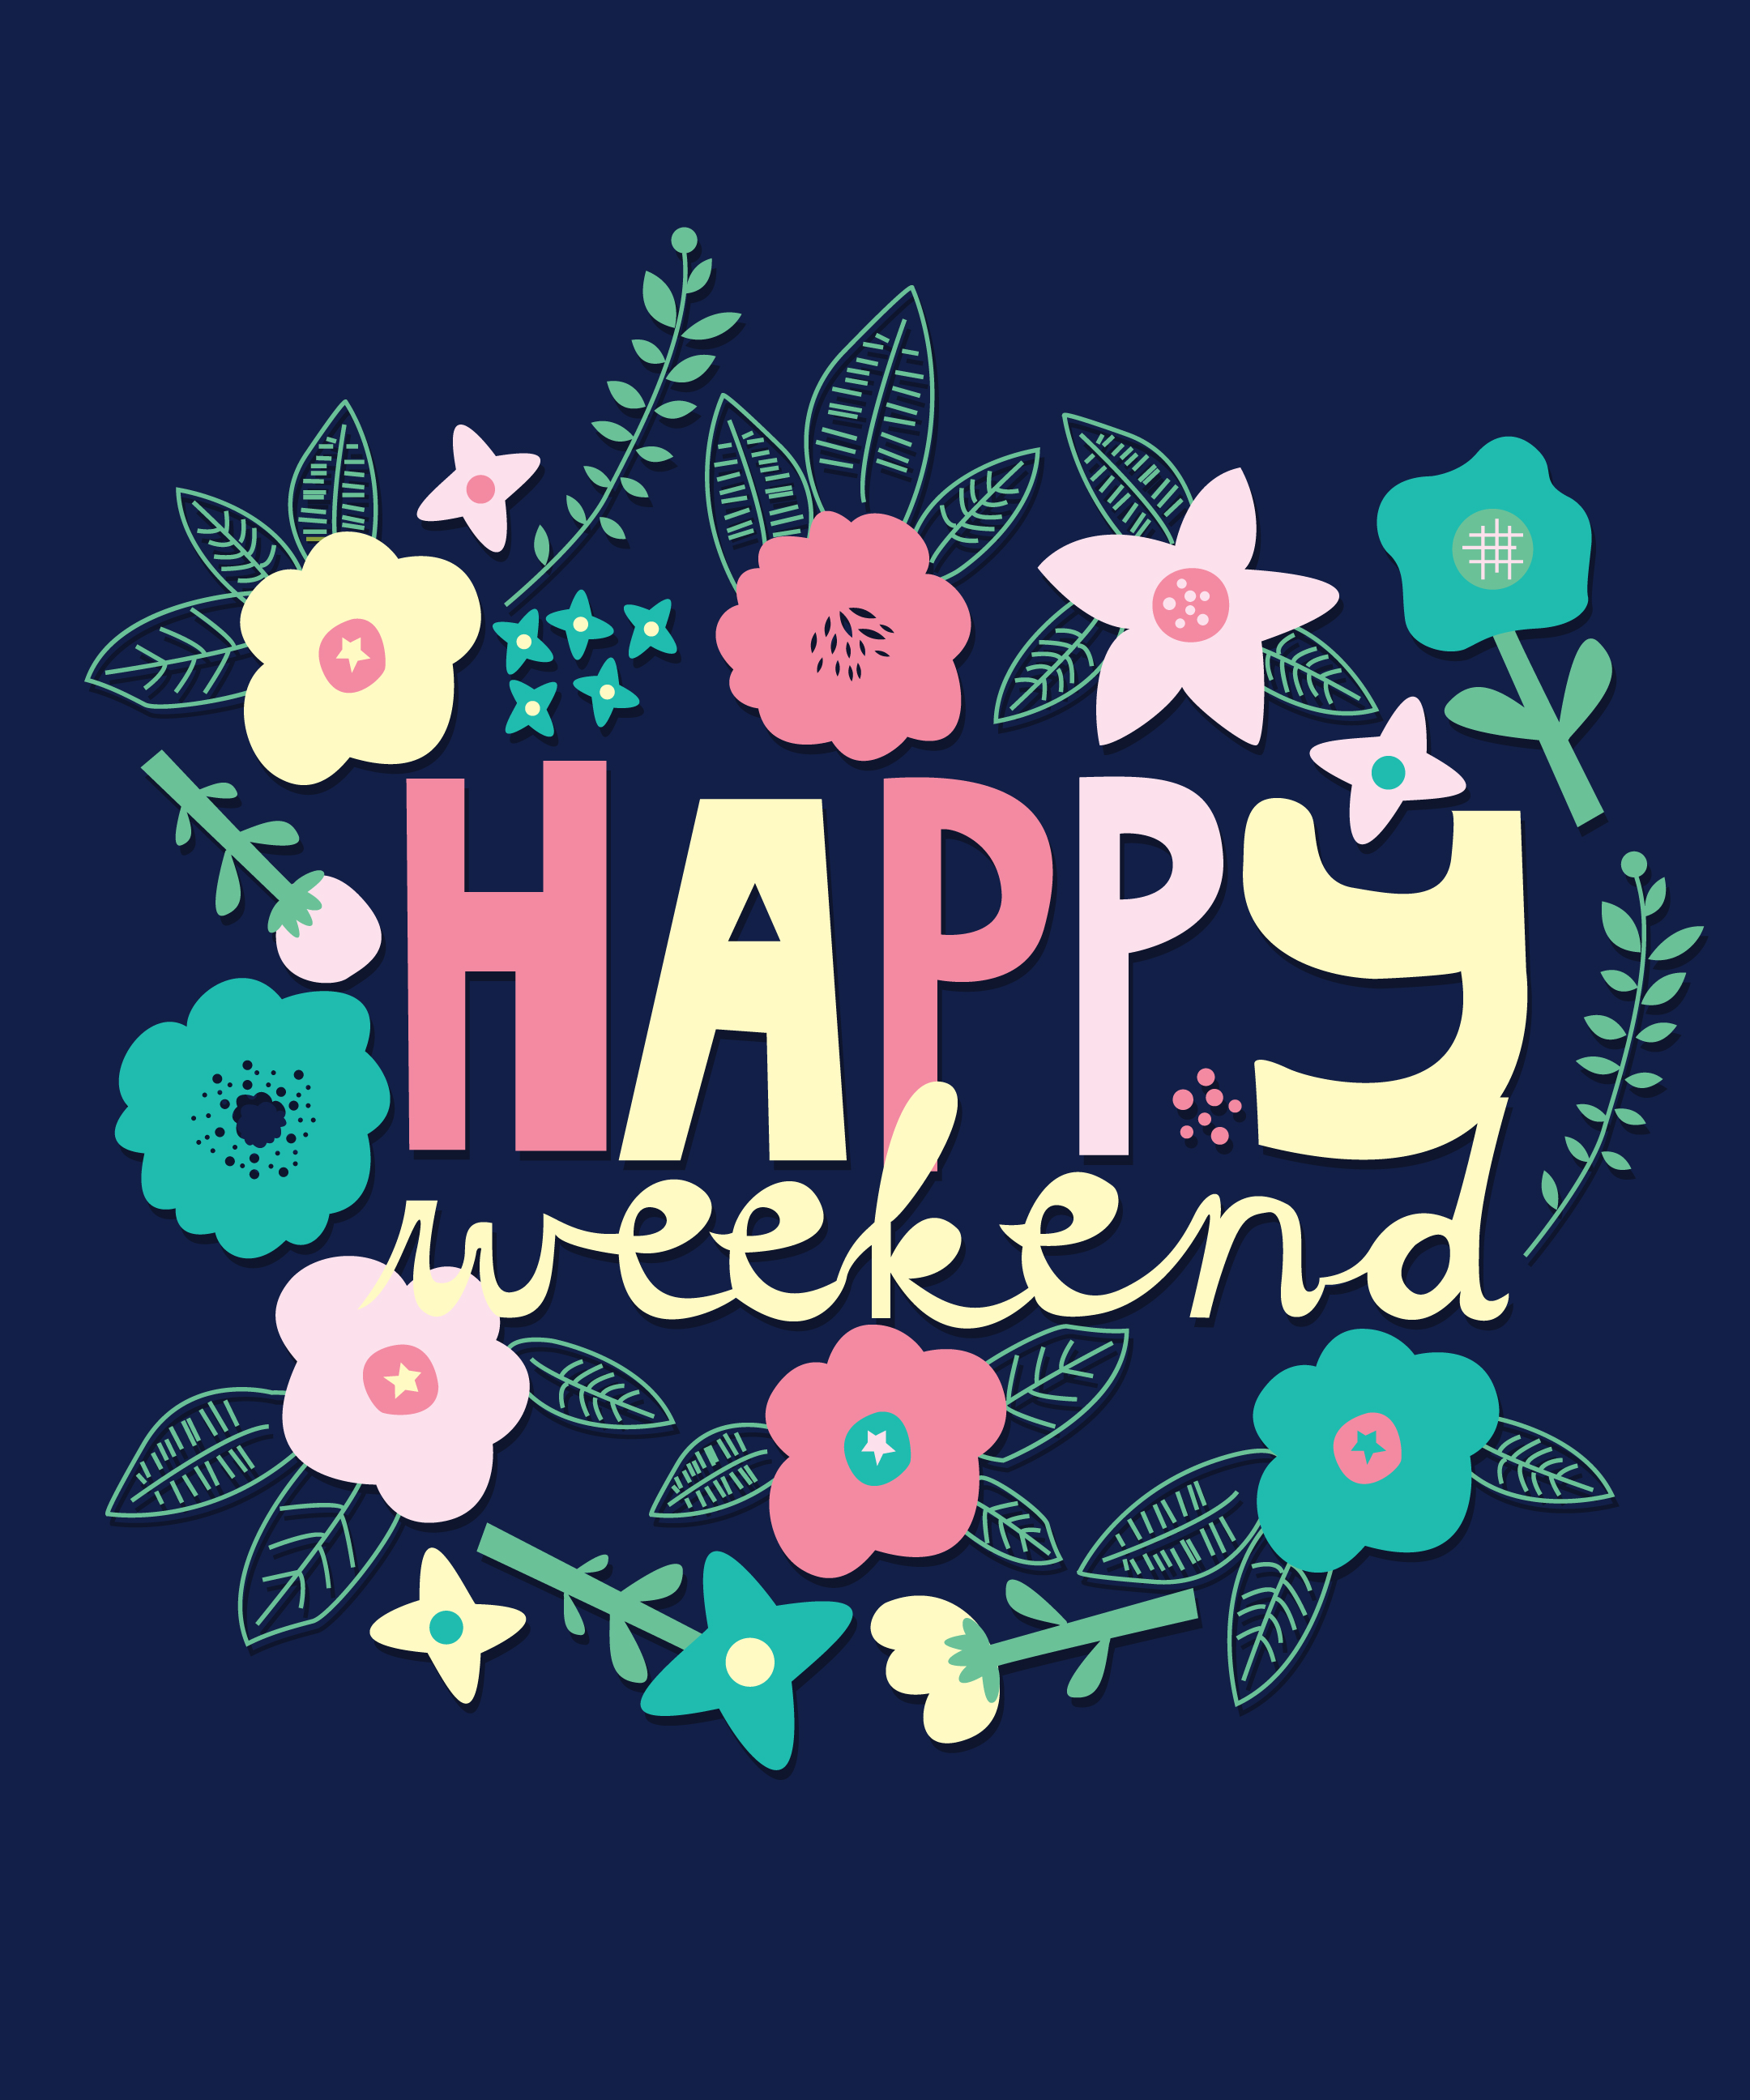 Hand drawn flowers with Happy Weekend text - Download Free Vectors, Clipart  Graphics & Vector Art